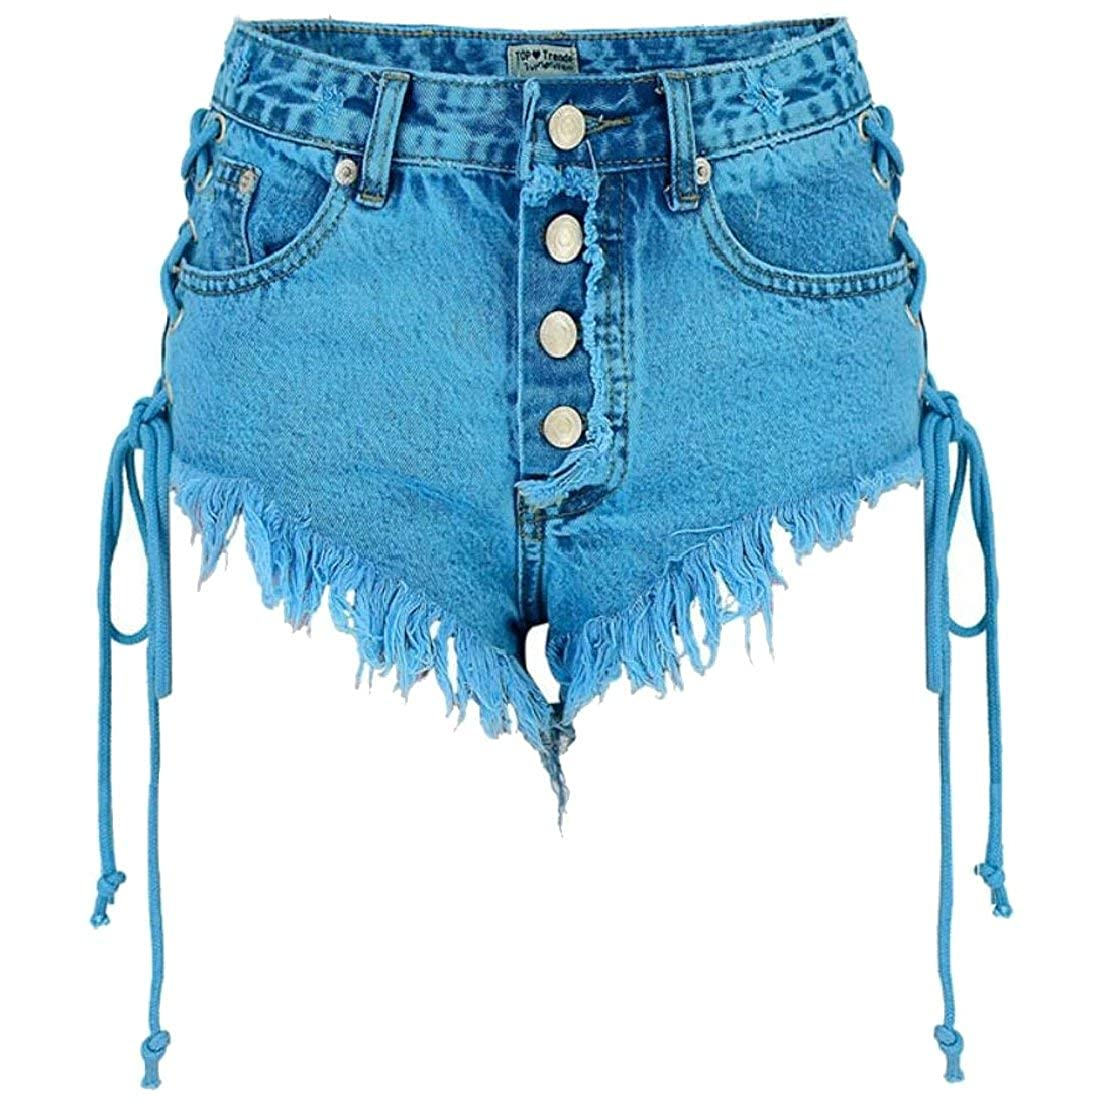 d6fea6d421c7 Alion Womens Lace up Distressed Shorts Pants High Waist Ripped Vintage  Denim Bandage Hot Shorts at Amazon Women's Clothing store: